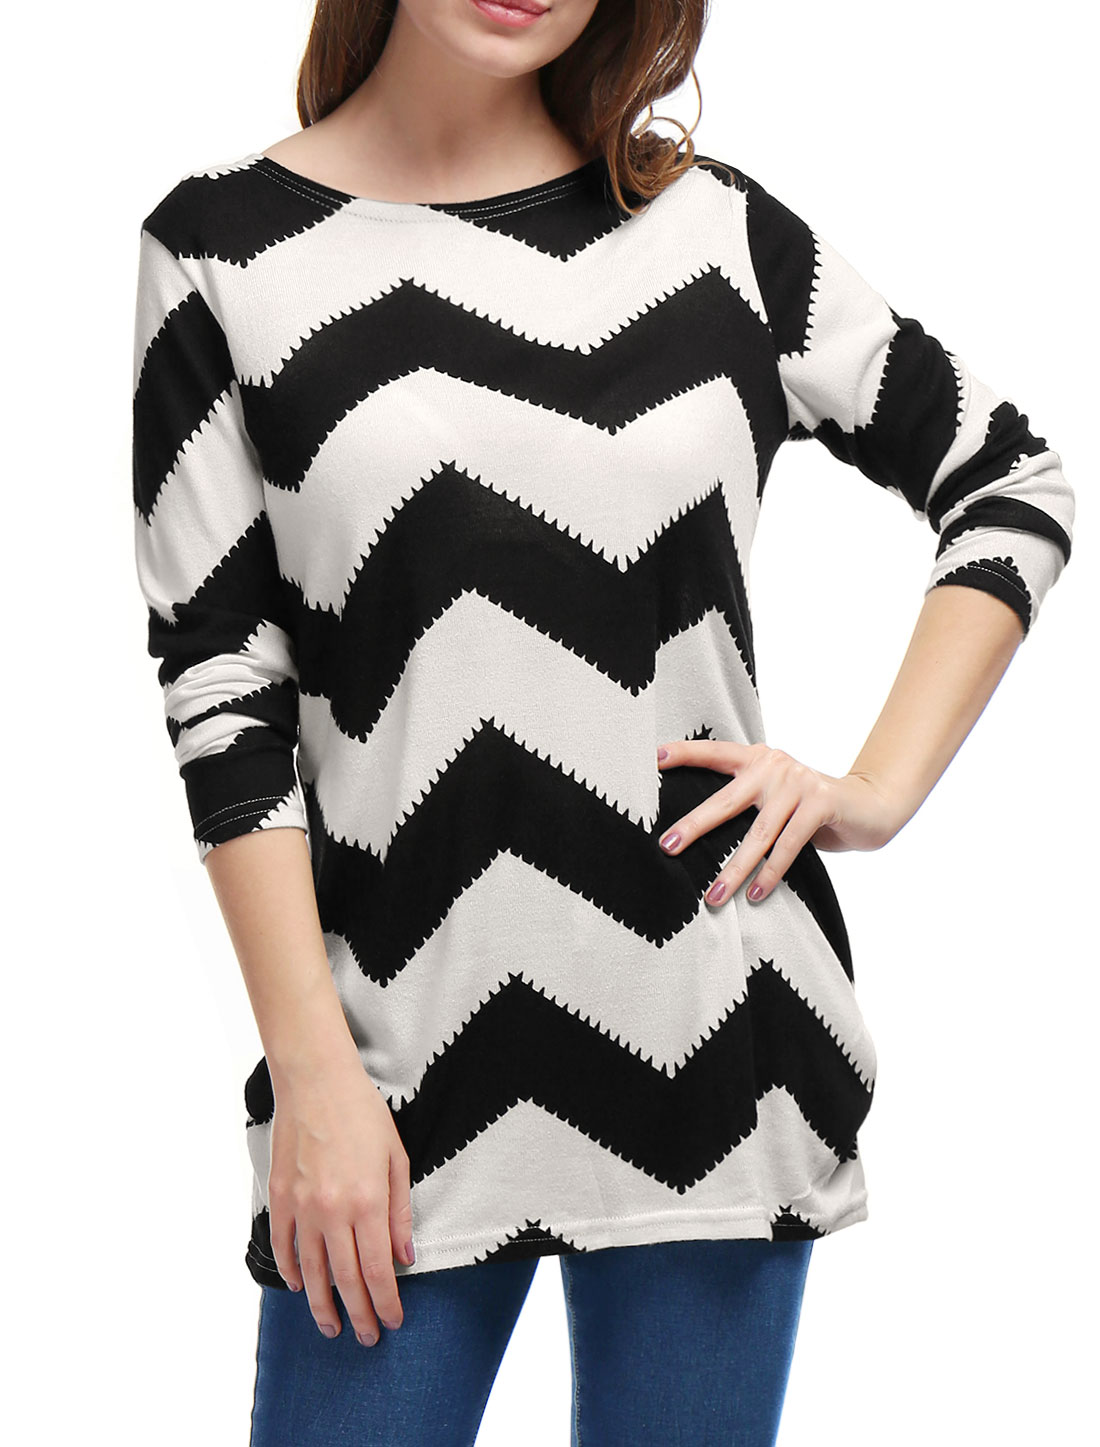 Allegra K Ladies Zig-Zag Pattern Tunic Knitted Top Black White S